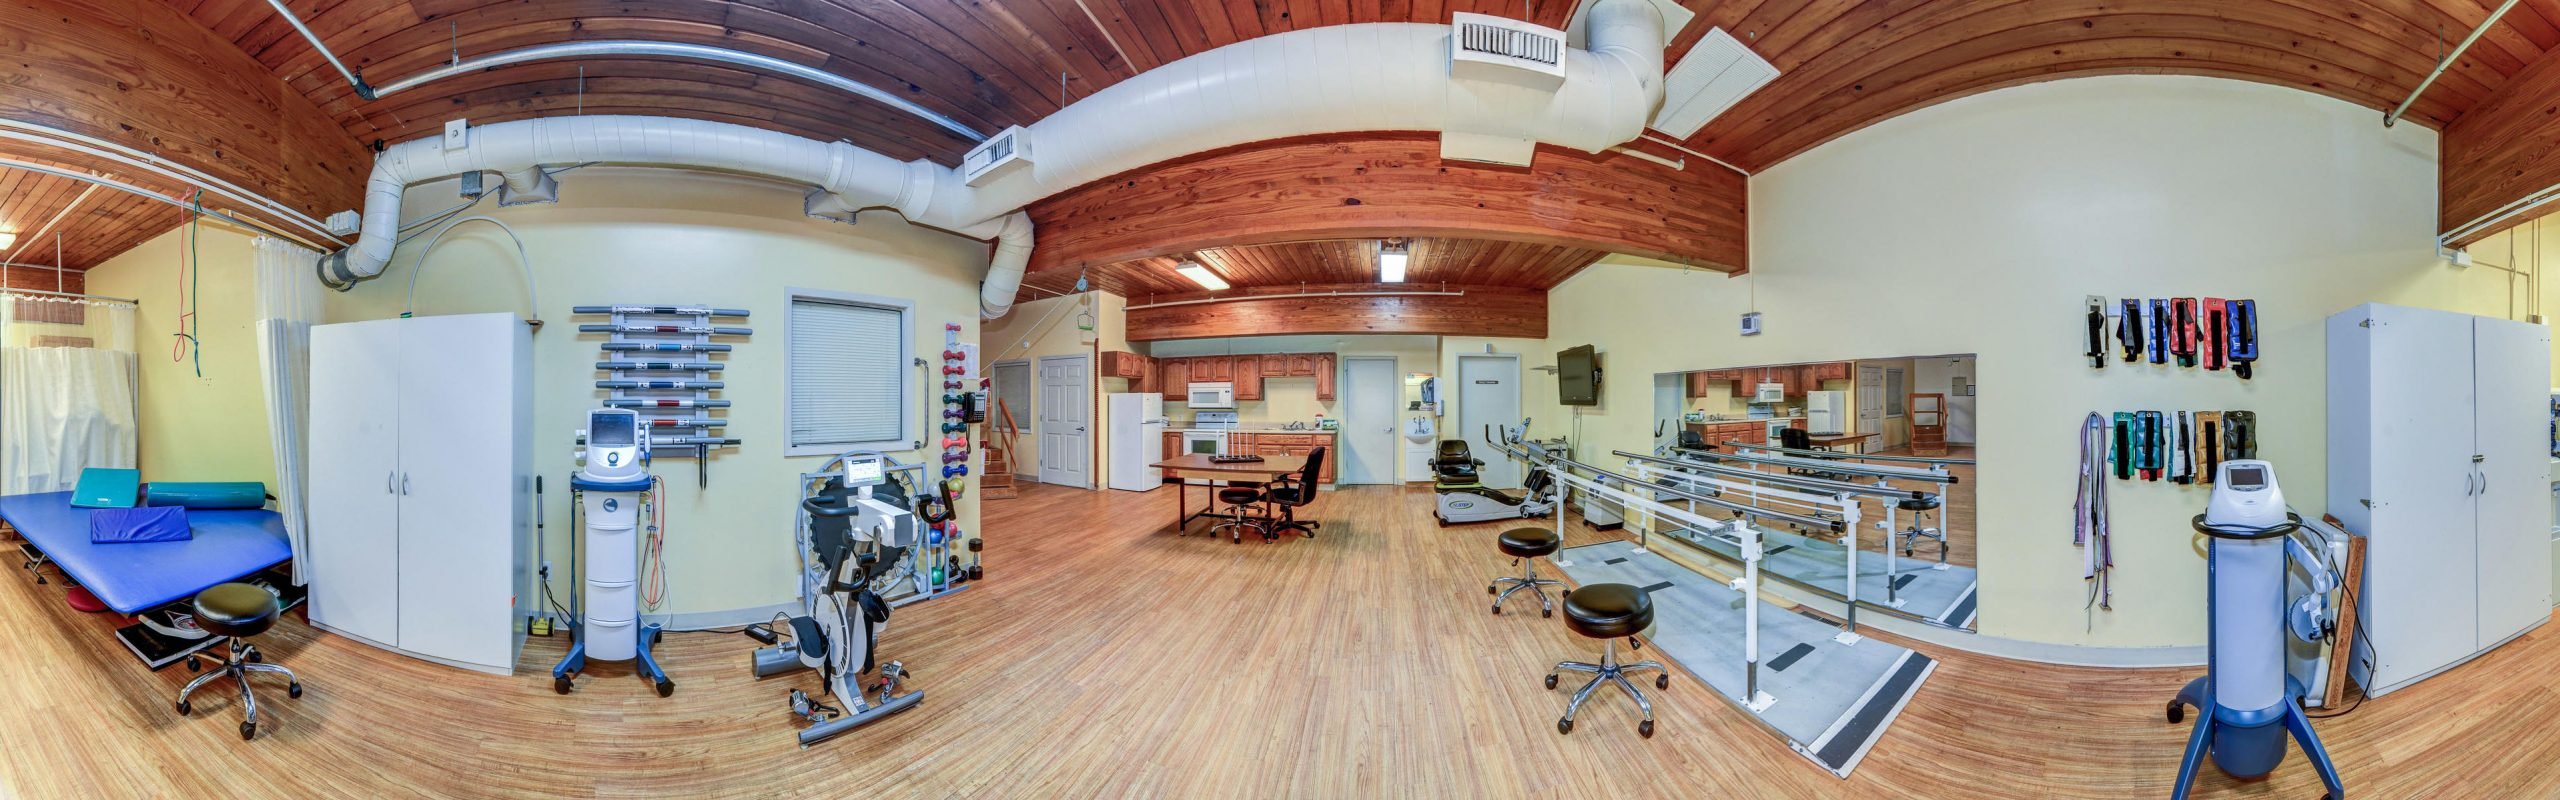 Panoramic view of Stonerise Parkersburg Therapy and Rehabilitation room with equipment